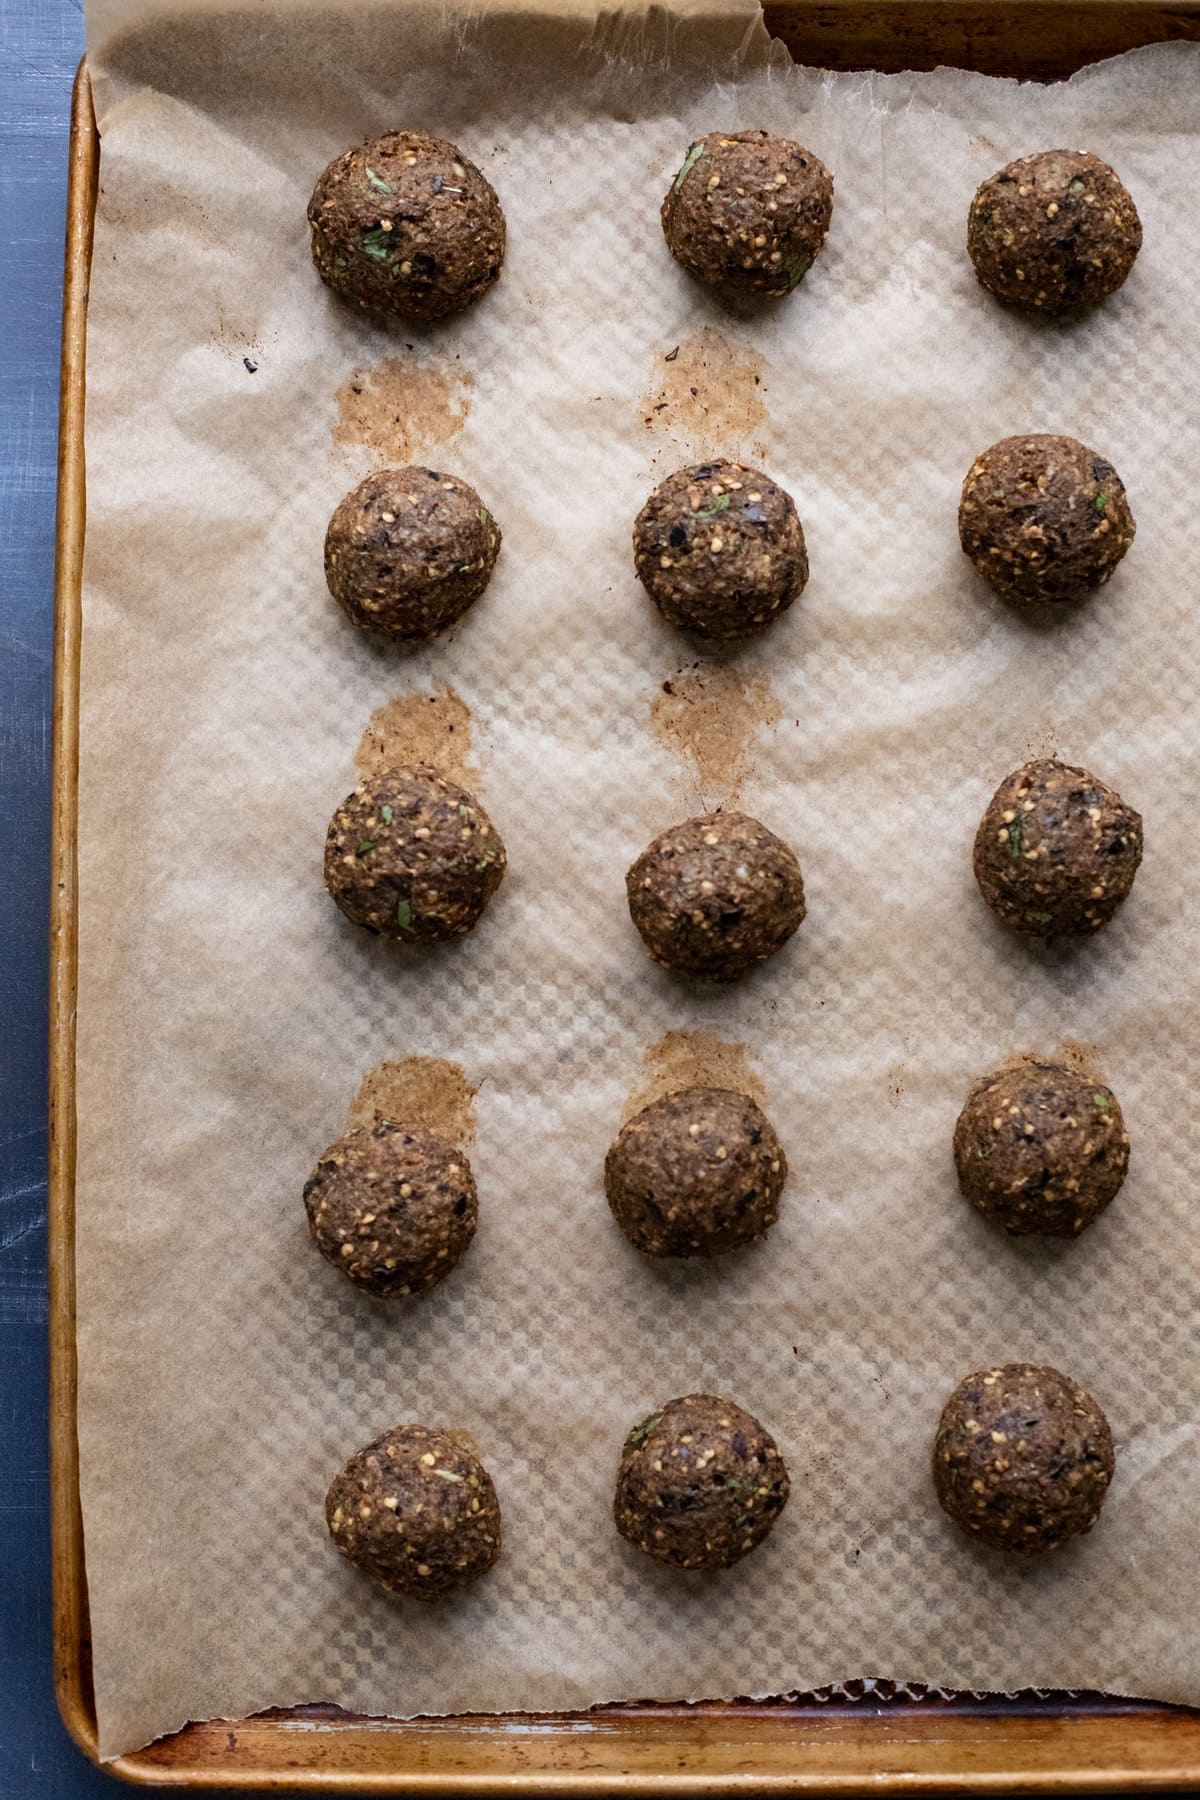 Cooked eggplant meatballs on a baking sheet lined with parchment paper.